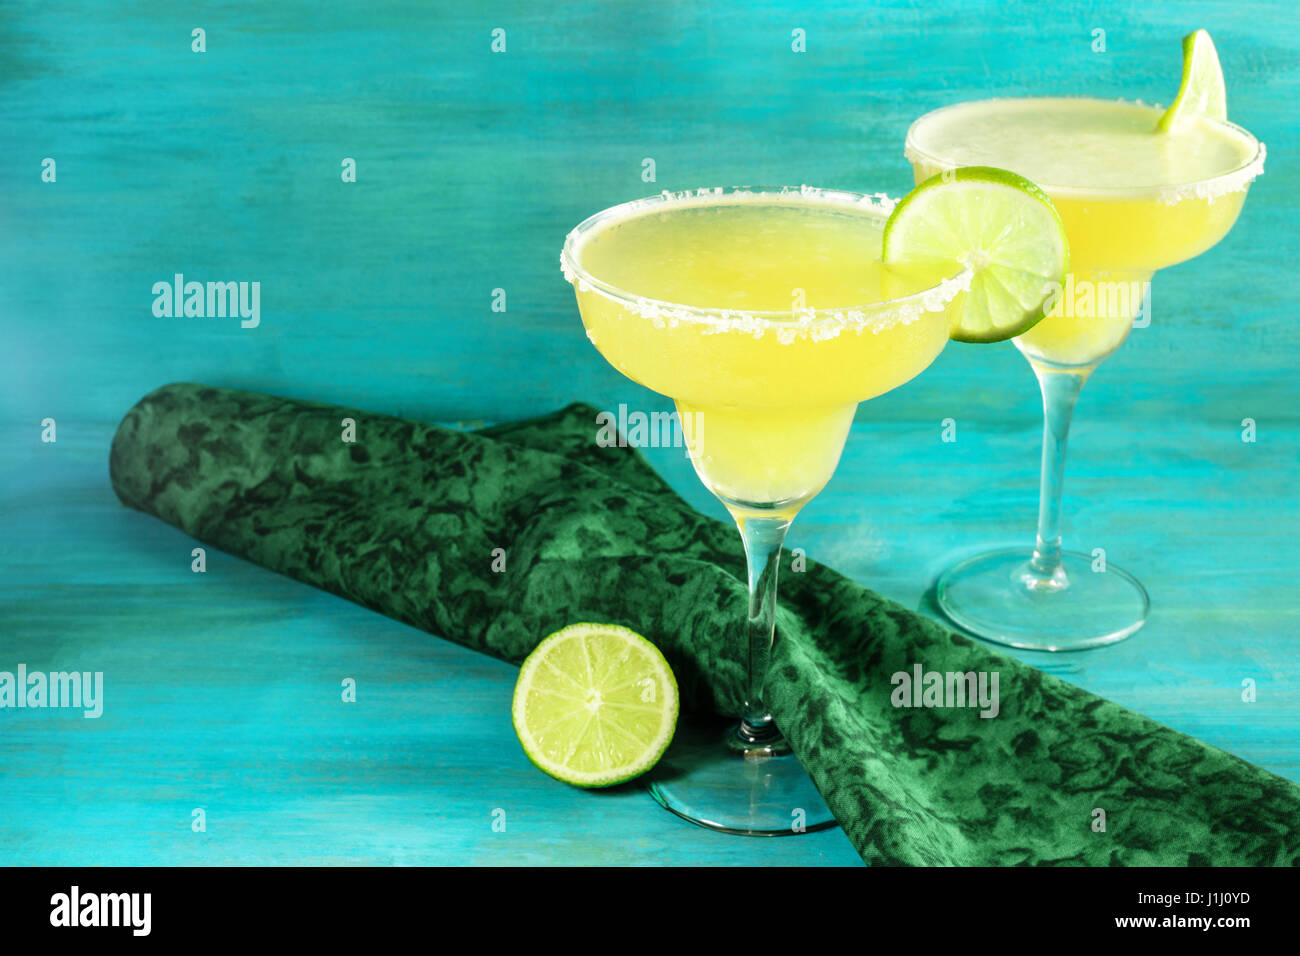 Lemon Margarita cocktails with limes and copyspace - Stock Image